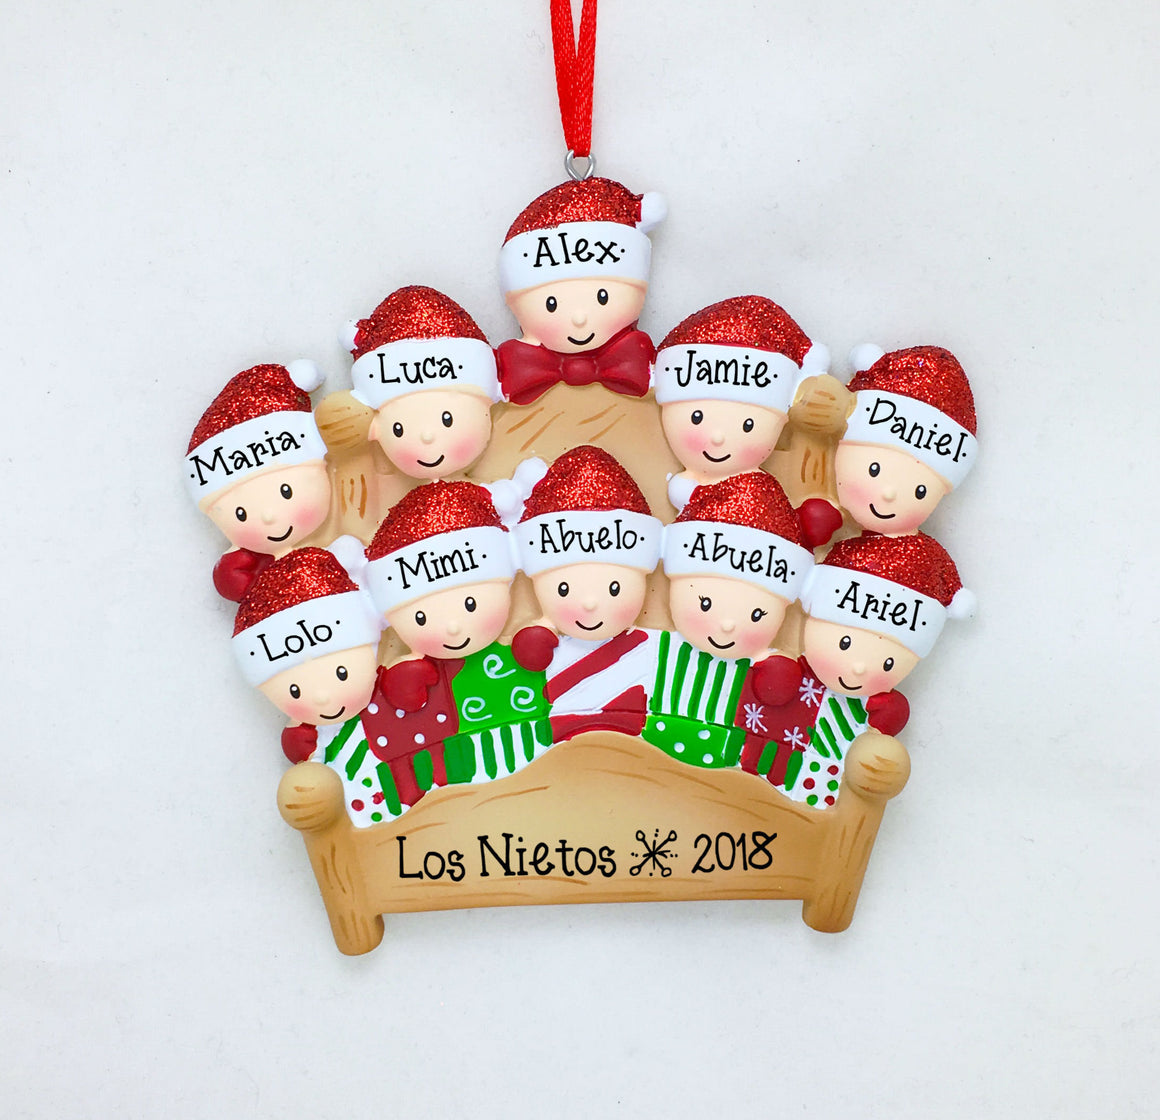 10 Tucked into Bed Personalized Christmas Ornament